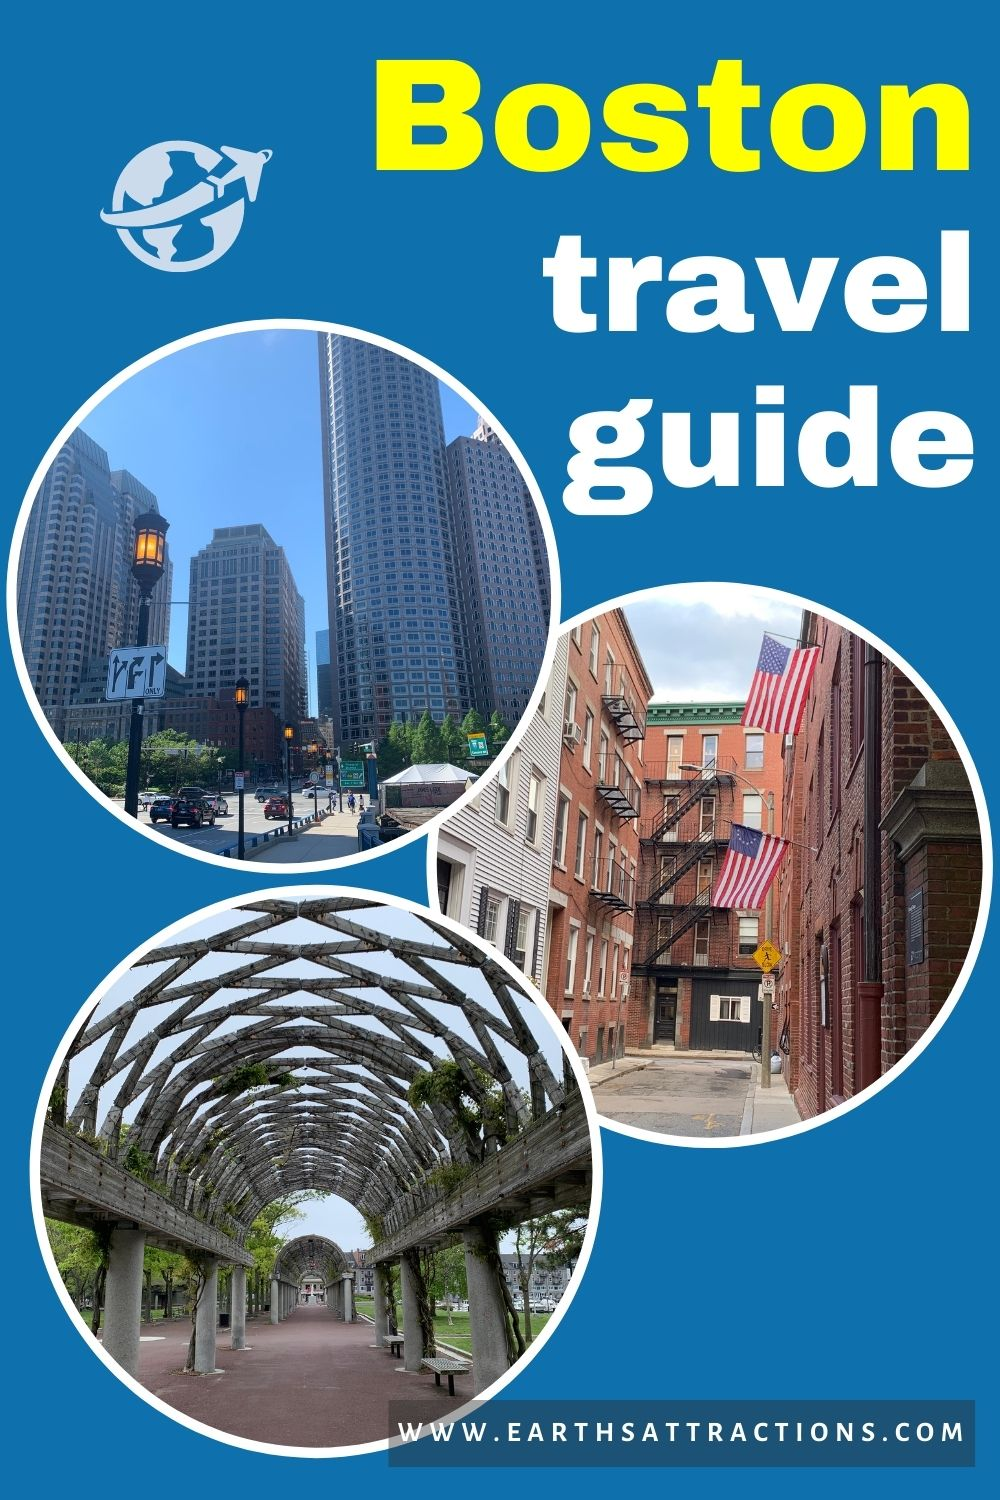 Boston travel guide. Discover the best things to do in Boston, offbeat Boston attractions, where to eat in Boston, and toston tips to help you plan the perfect Boston trip. #boston #bostonguide #usatravel #bostonthingstodo #earthsattractions #traveldestinations #northamerica